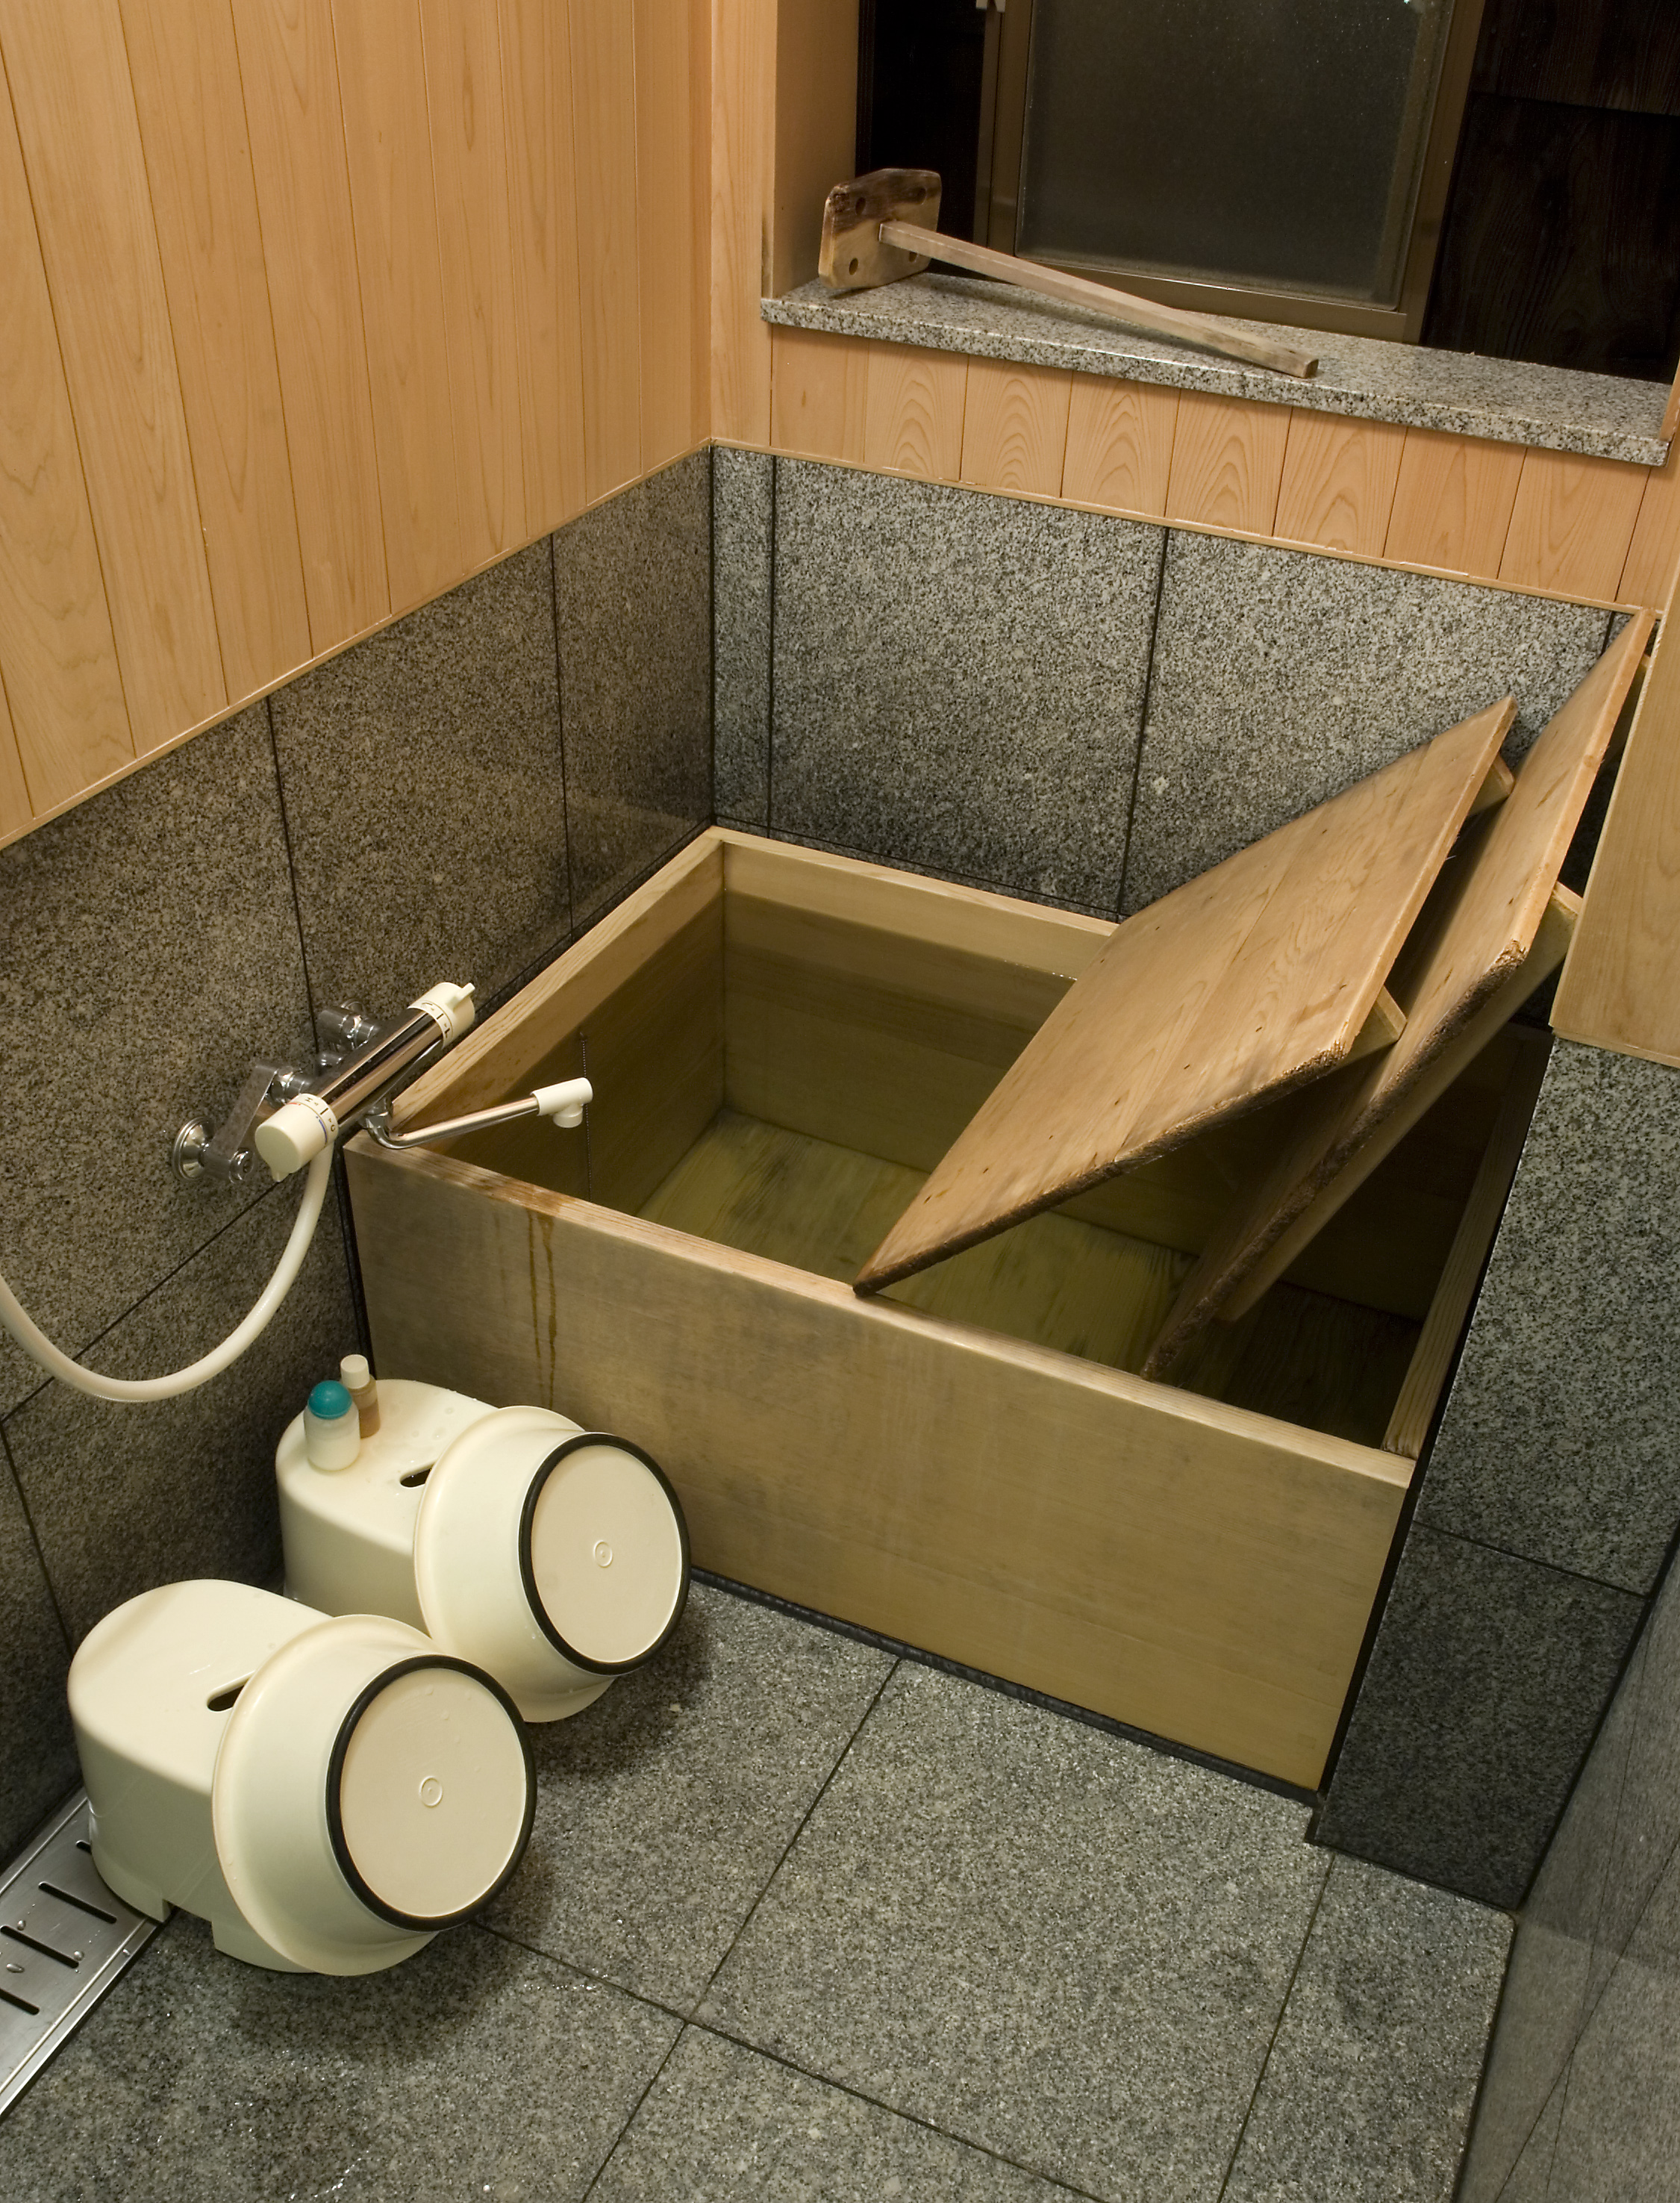 Bathroom Soaking Tubs For Small Spaces With Unique Small ... on Small Space Small Bathroom Ideas With Tub id=82865